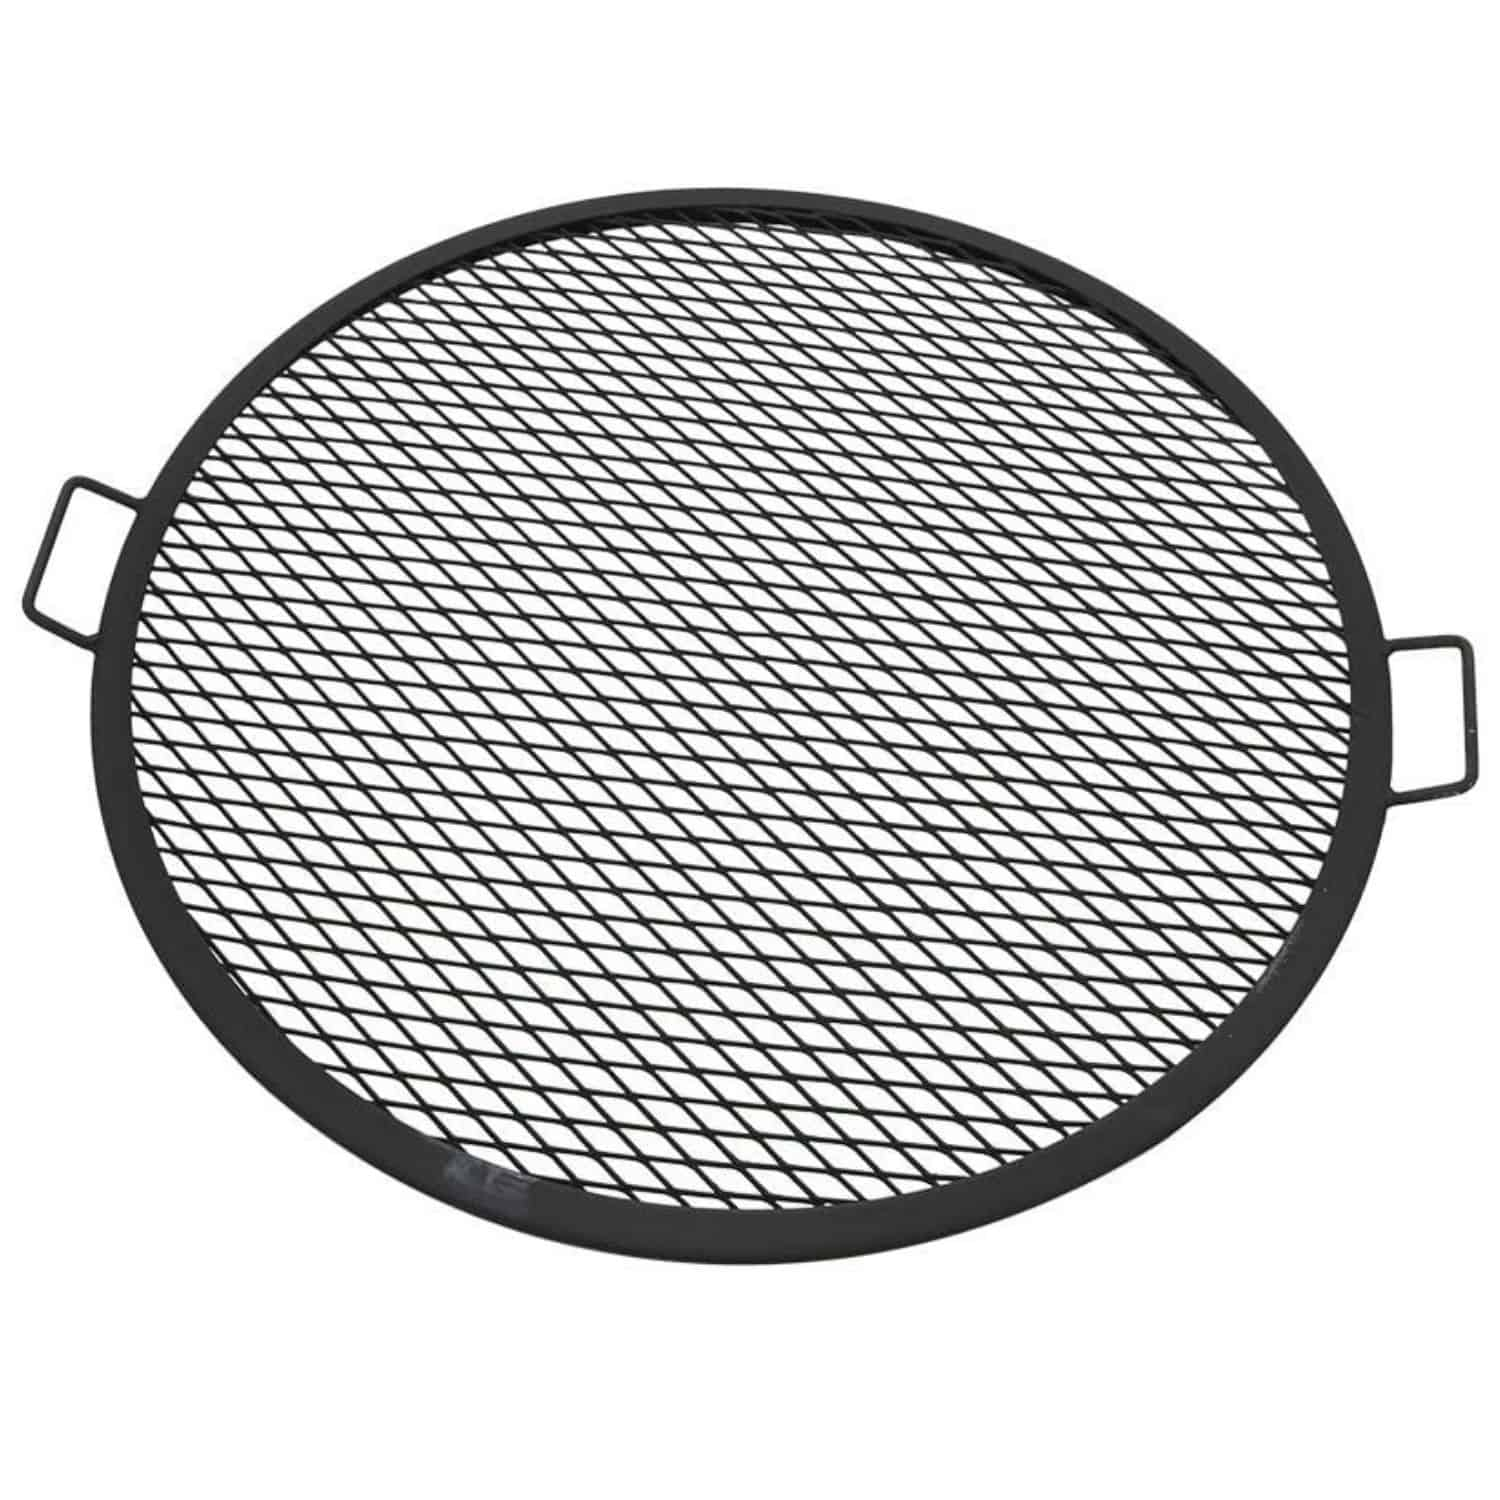 Sunnydaze X-Marks Fire Pit Cooking Grate